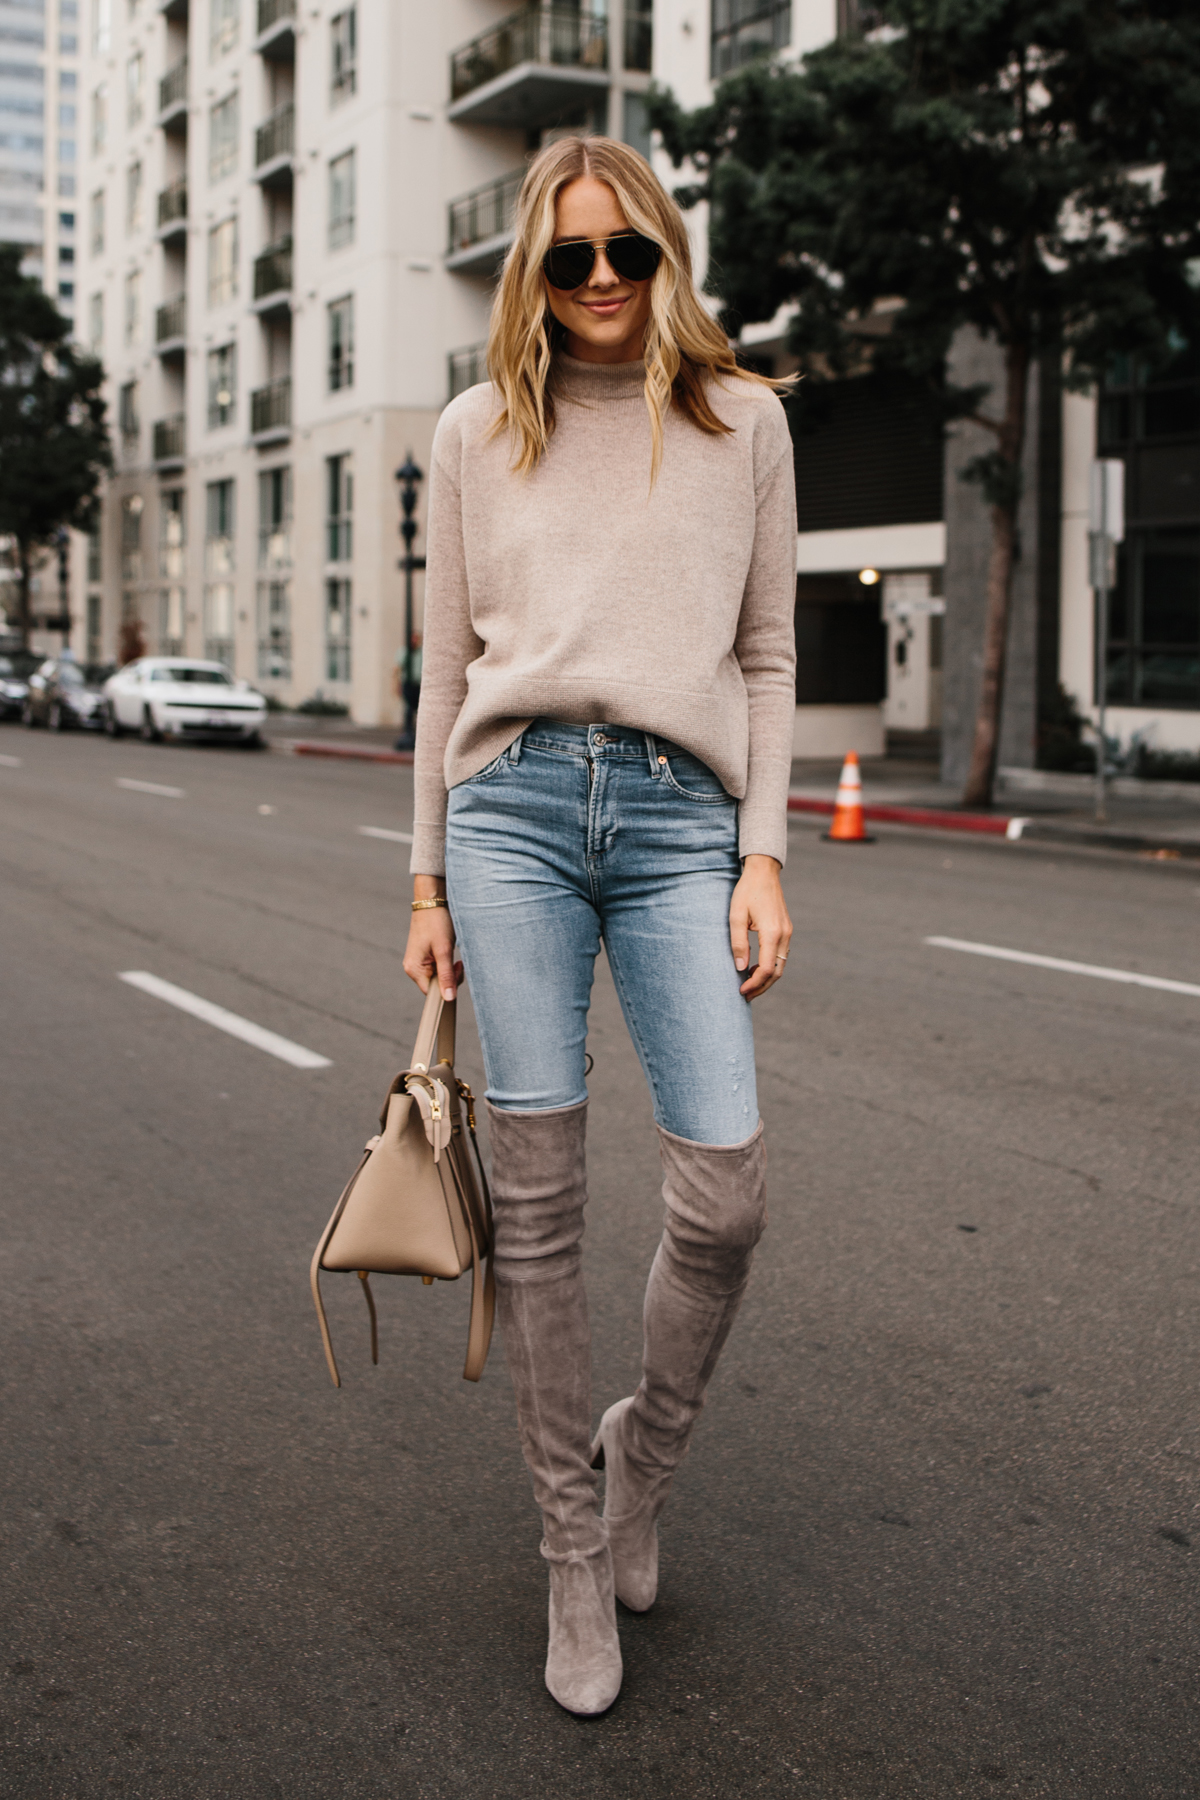 Fashion Jackson Everlane Oatmeal Sweater Denim Skinny Jeans Stuart Weitzman OTK Taupe Boots Celine Mini Belt Bag Fashion Jackson San Diego Fashion Blogger Street Style